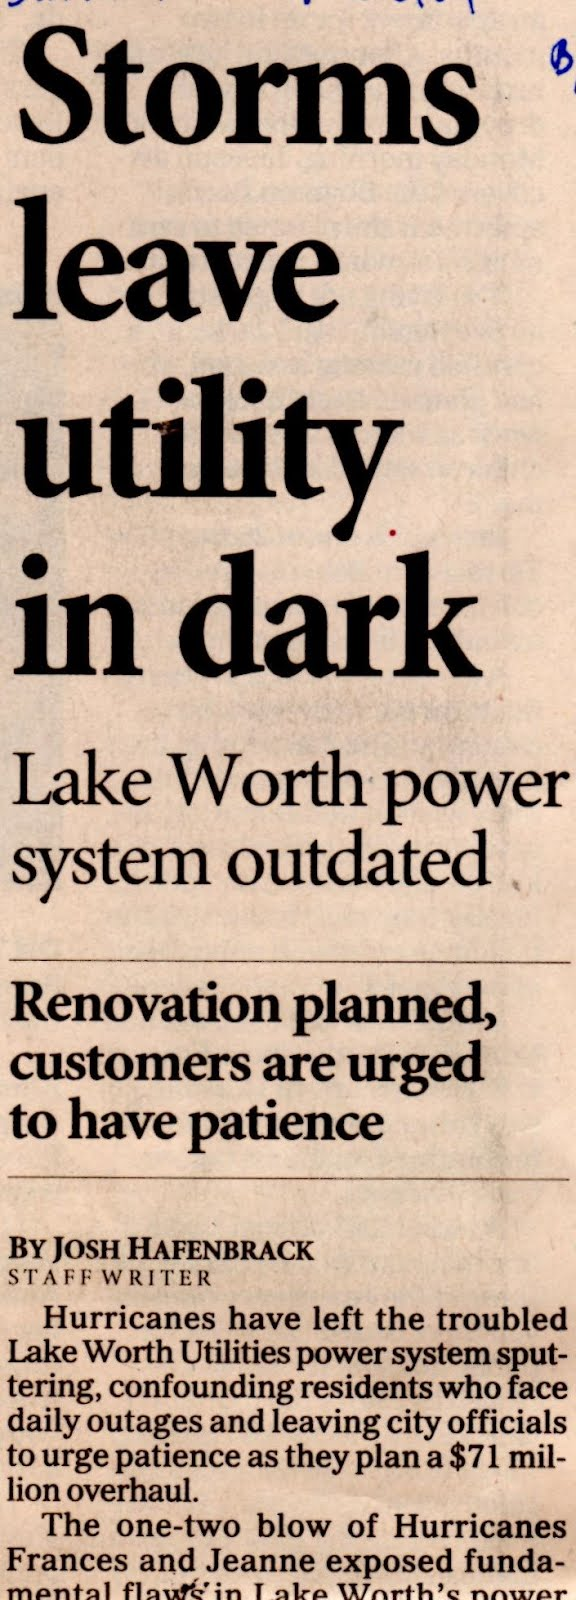 Why Lake Worth Elec- tric Utility fell into dis- repair. Click newspaper clipping from 2004.